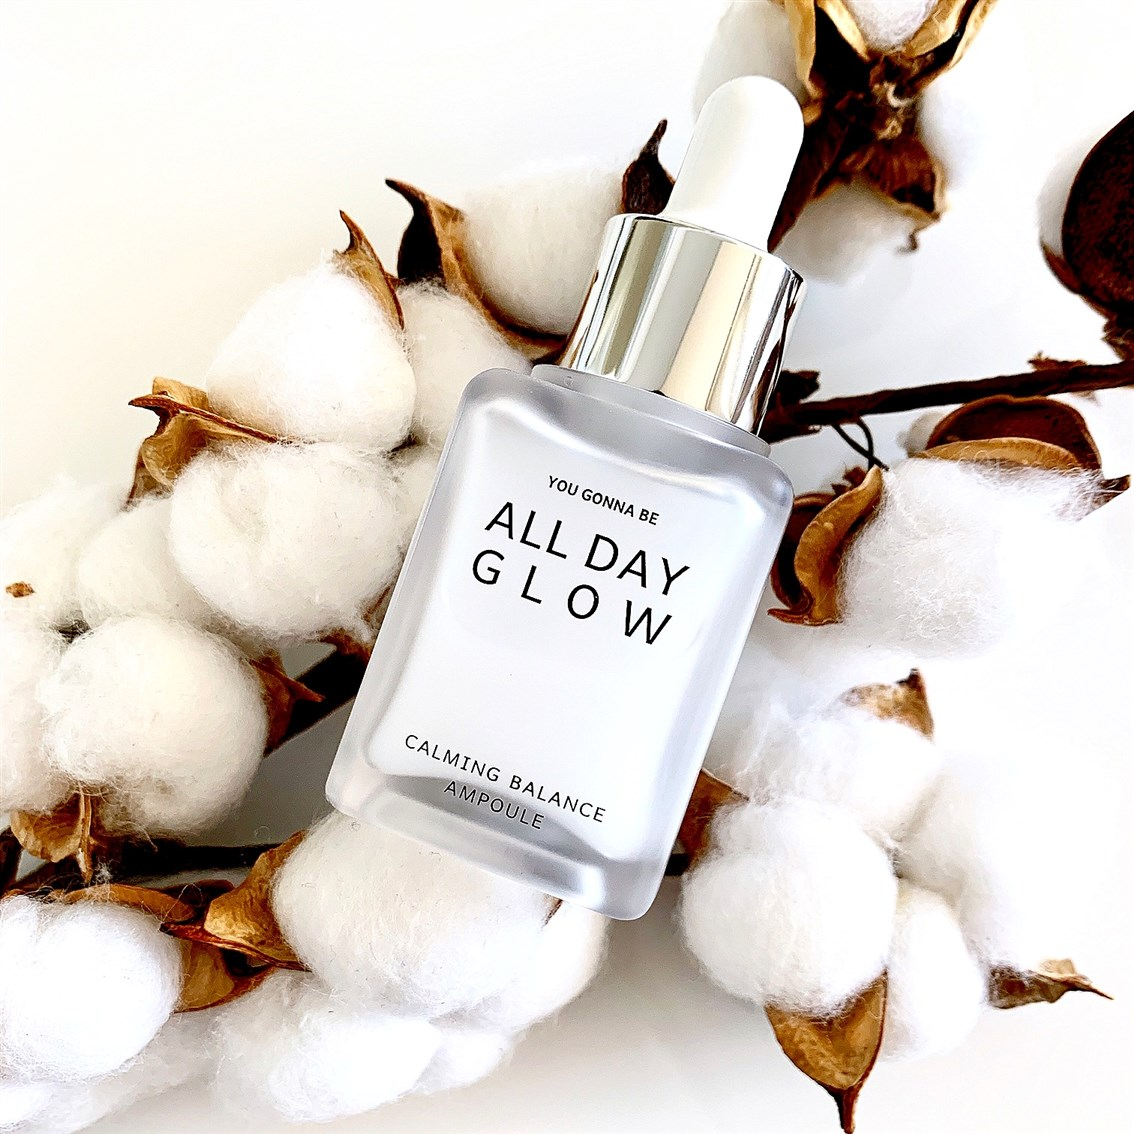 All Day Glow Calming Balance Ampoule Jolse